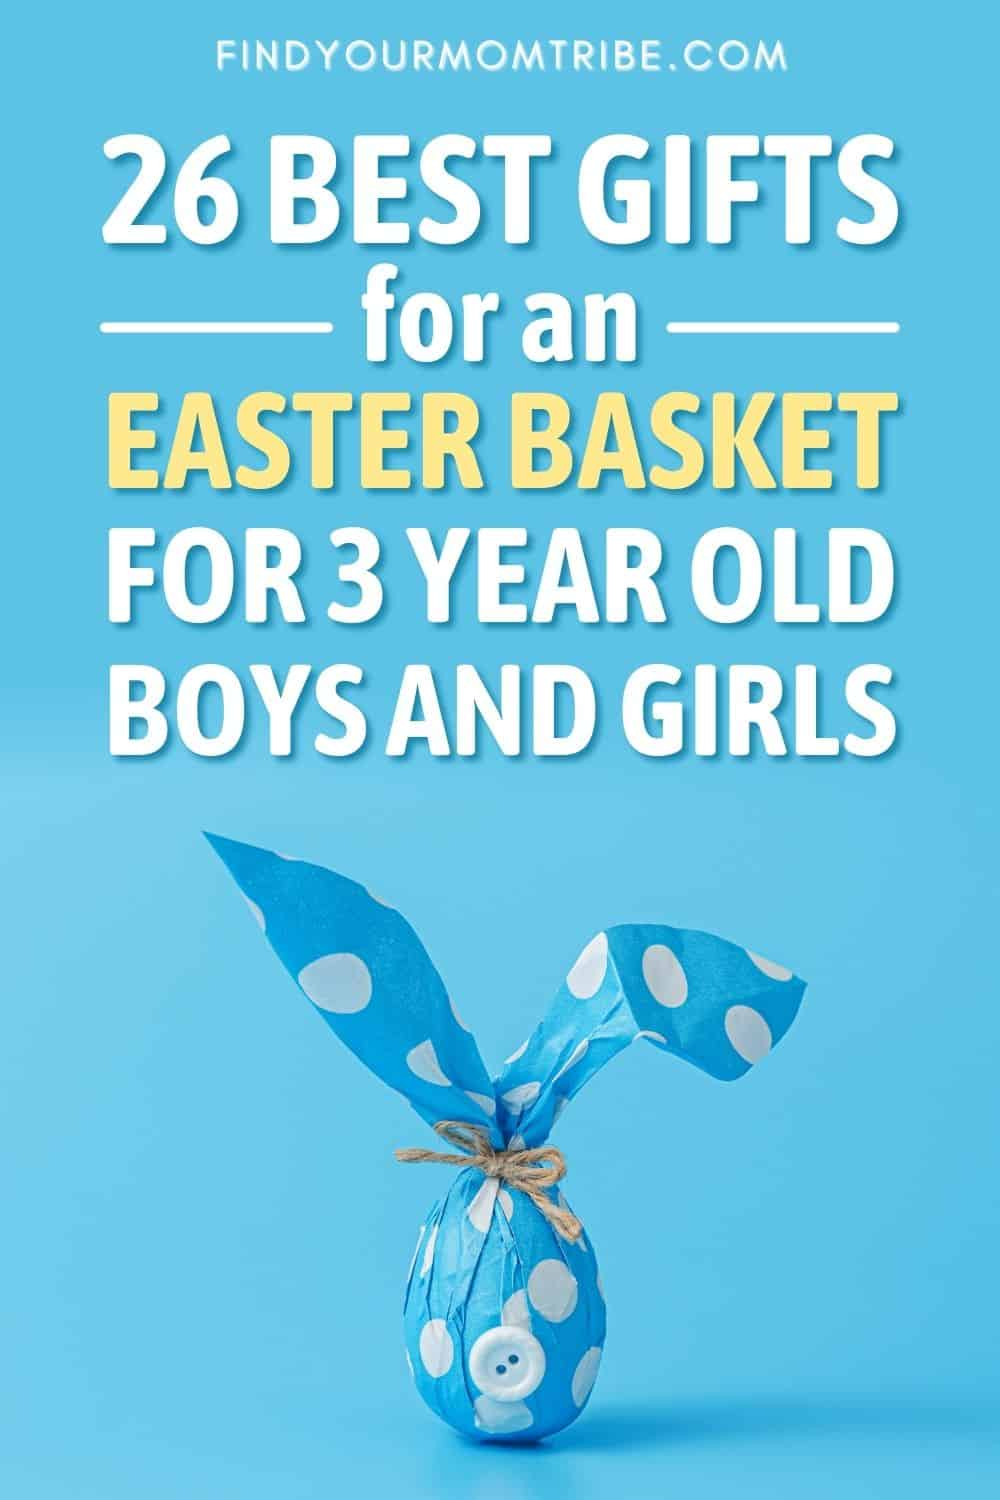 26 Best Gifts For An Easter Basket For 3 Year Old Boys And Girls Pinterest